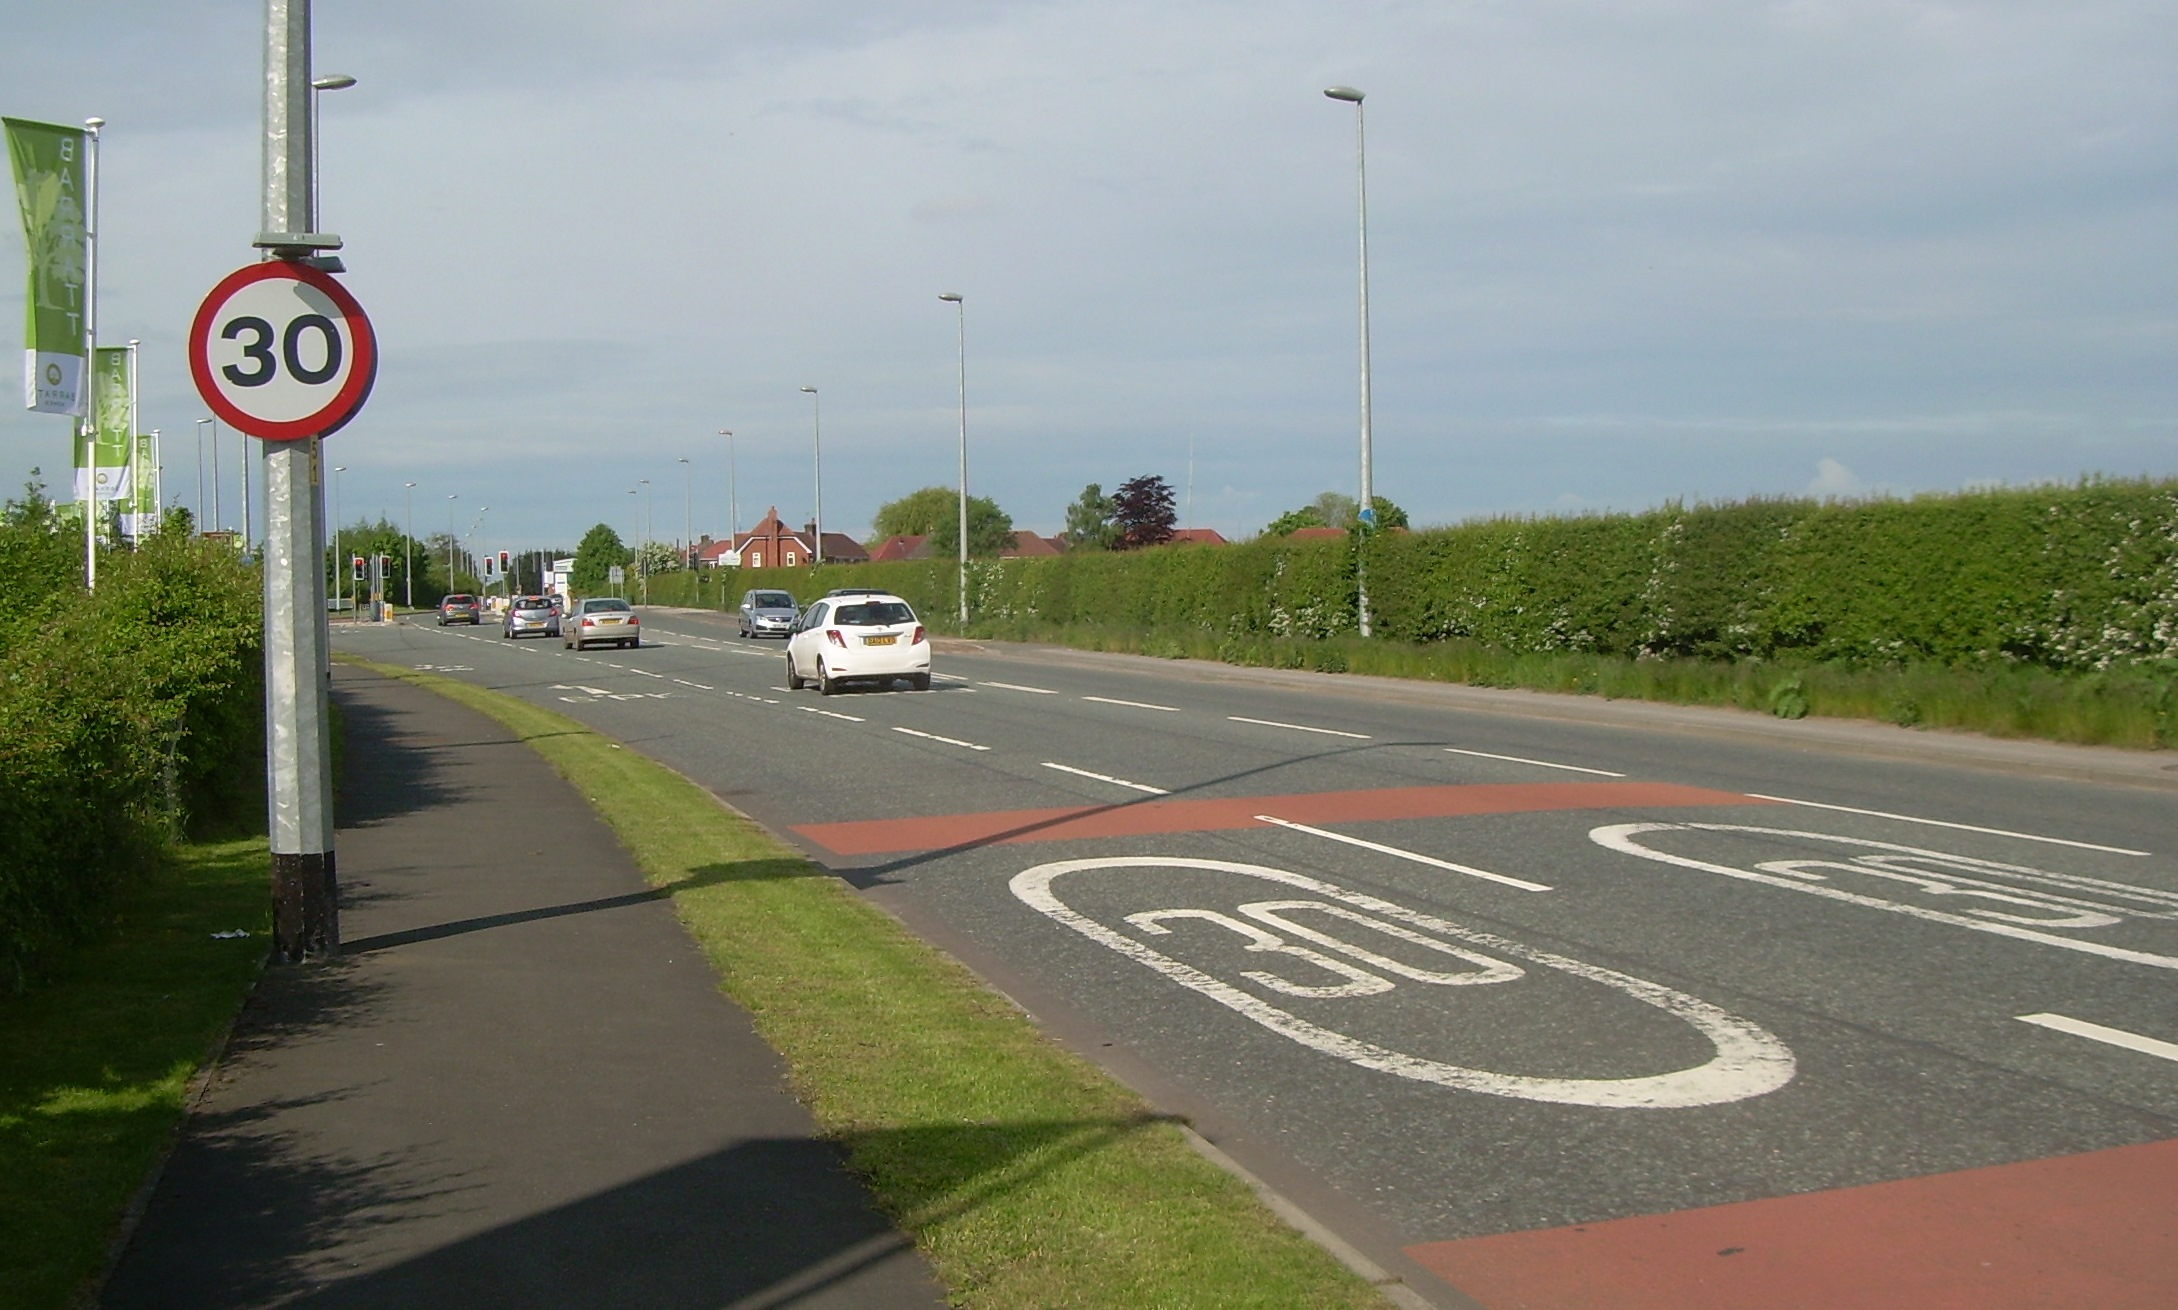 The 30 limit features on a sign and the road as motorists leave the A556.